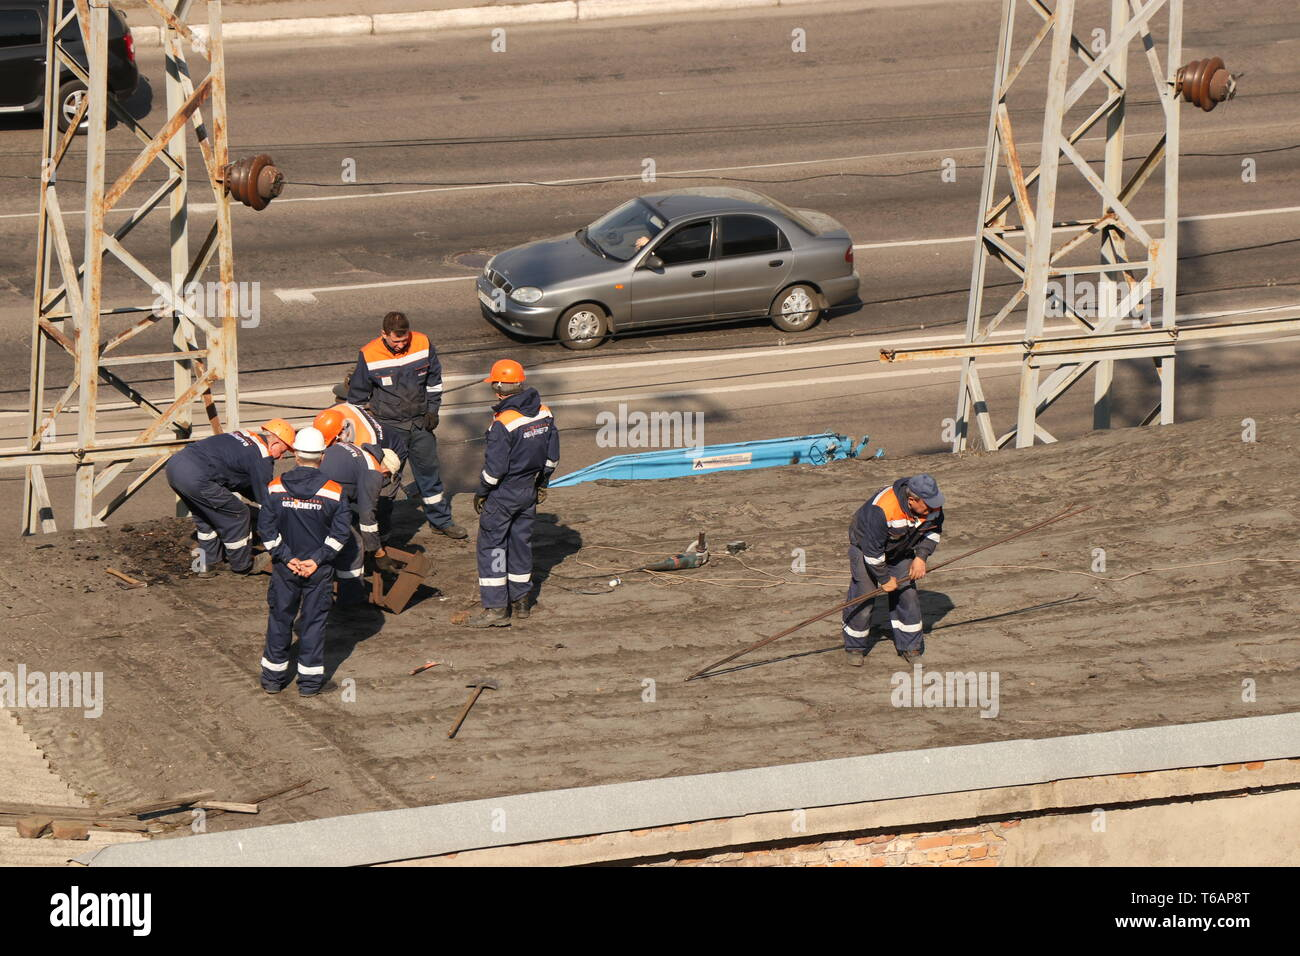 Kremenchug, Poltava region, Ukraine, April 9, 2019, improvement of the city, repair of power grids on the roof of the building Stock Photo